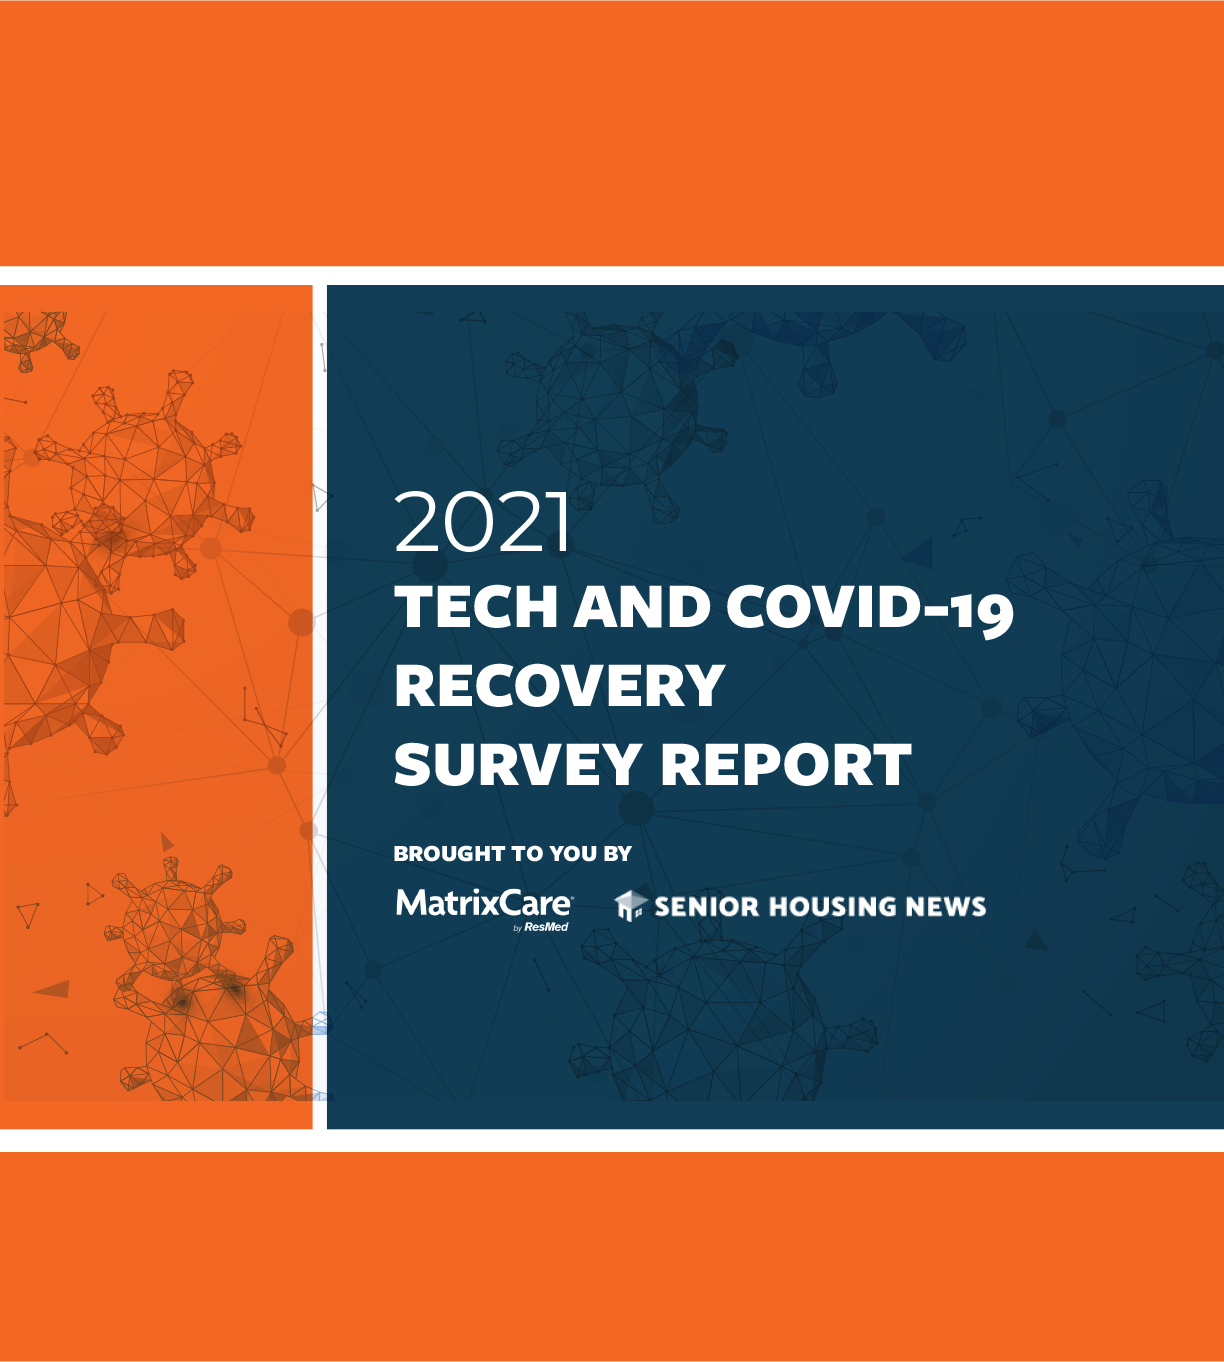 [eBook] 2021 Tech and COVID Recovery